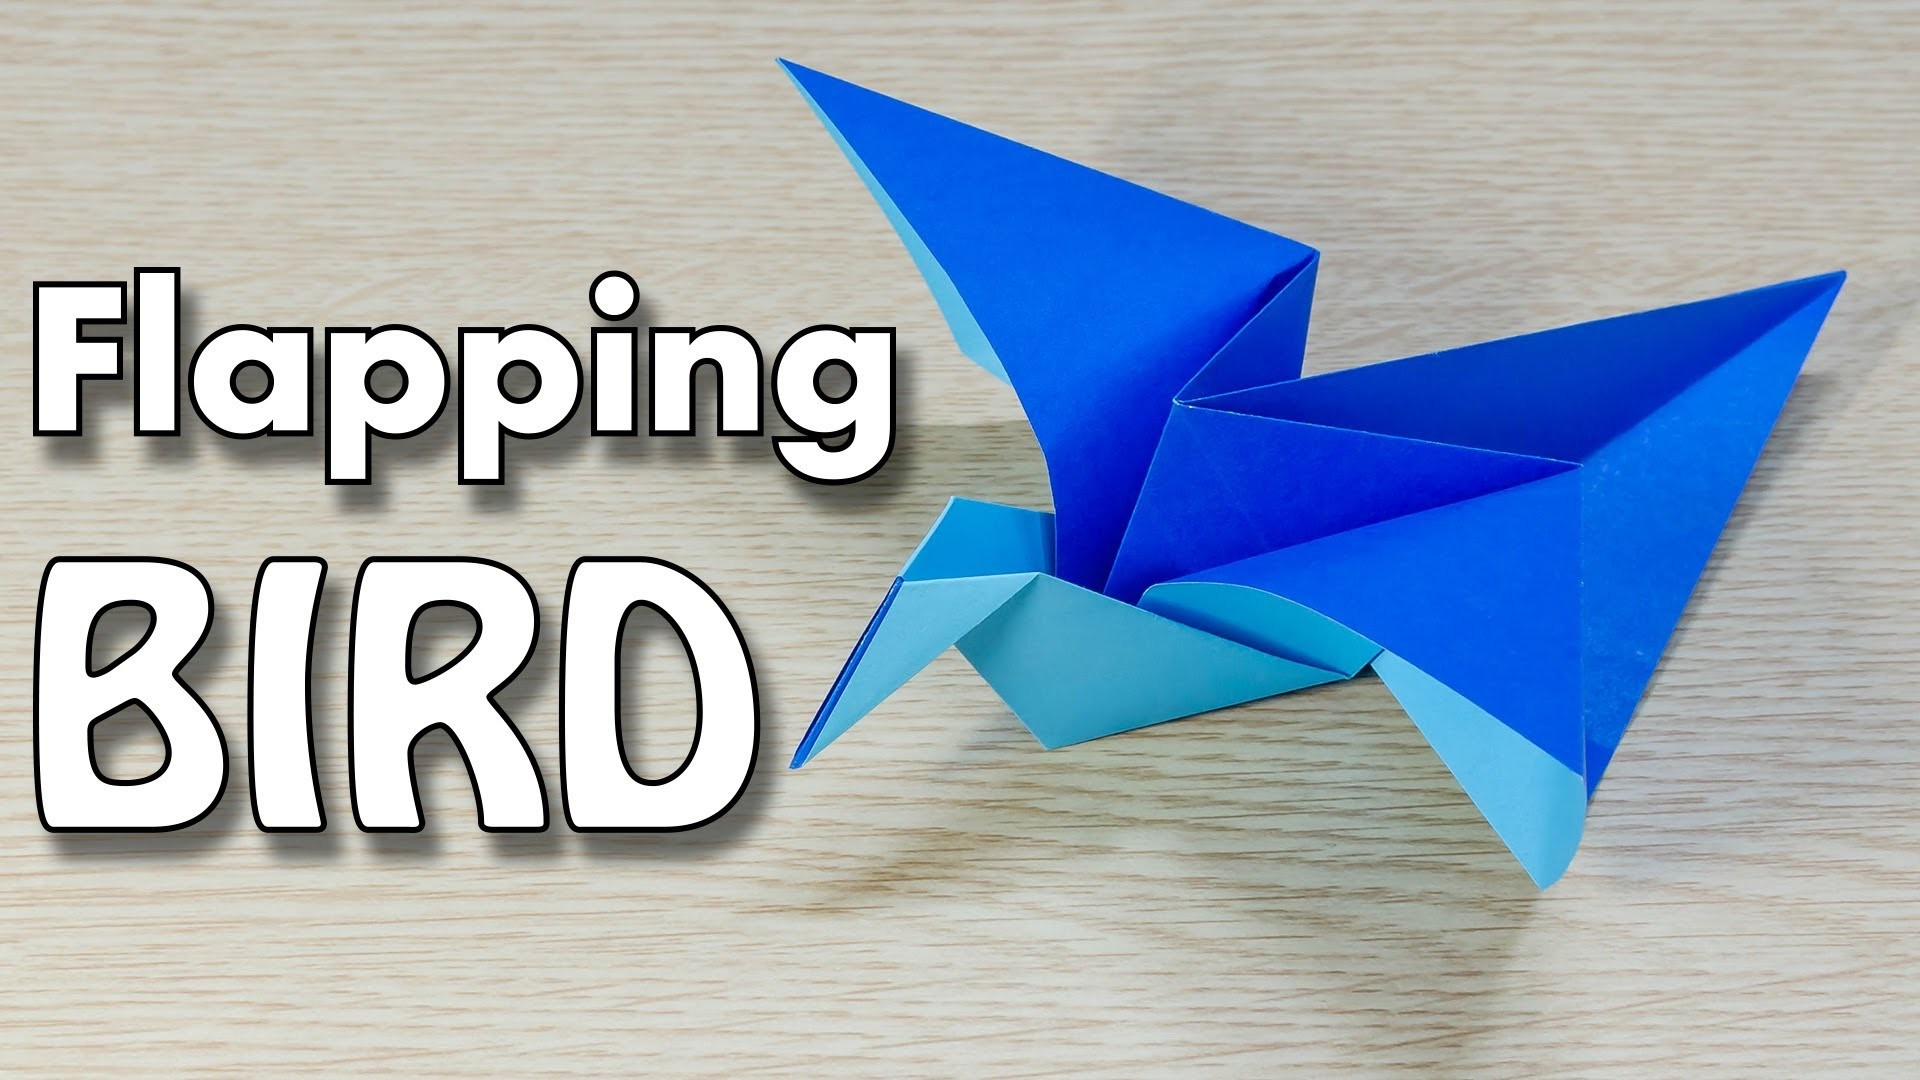 Flapping Bird Origami : easy and simple Tutorial